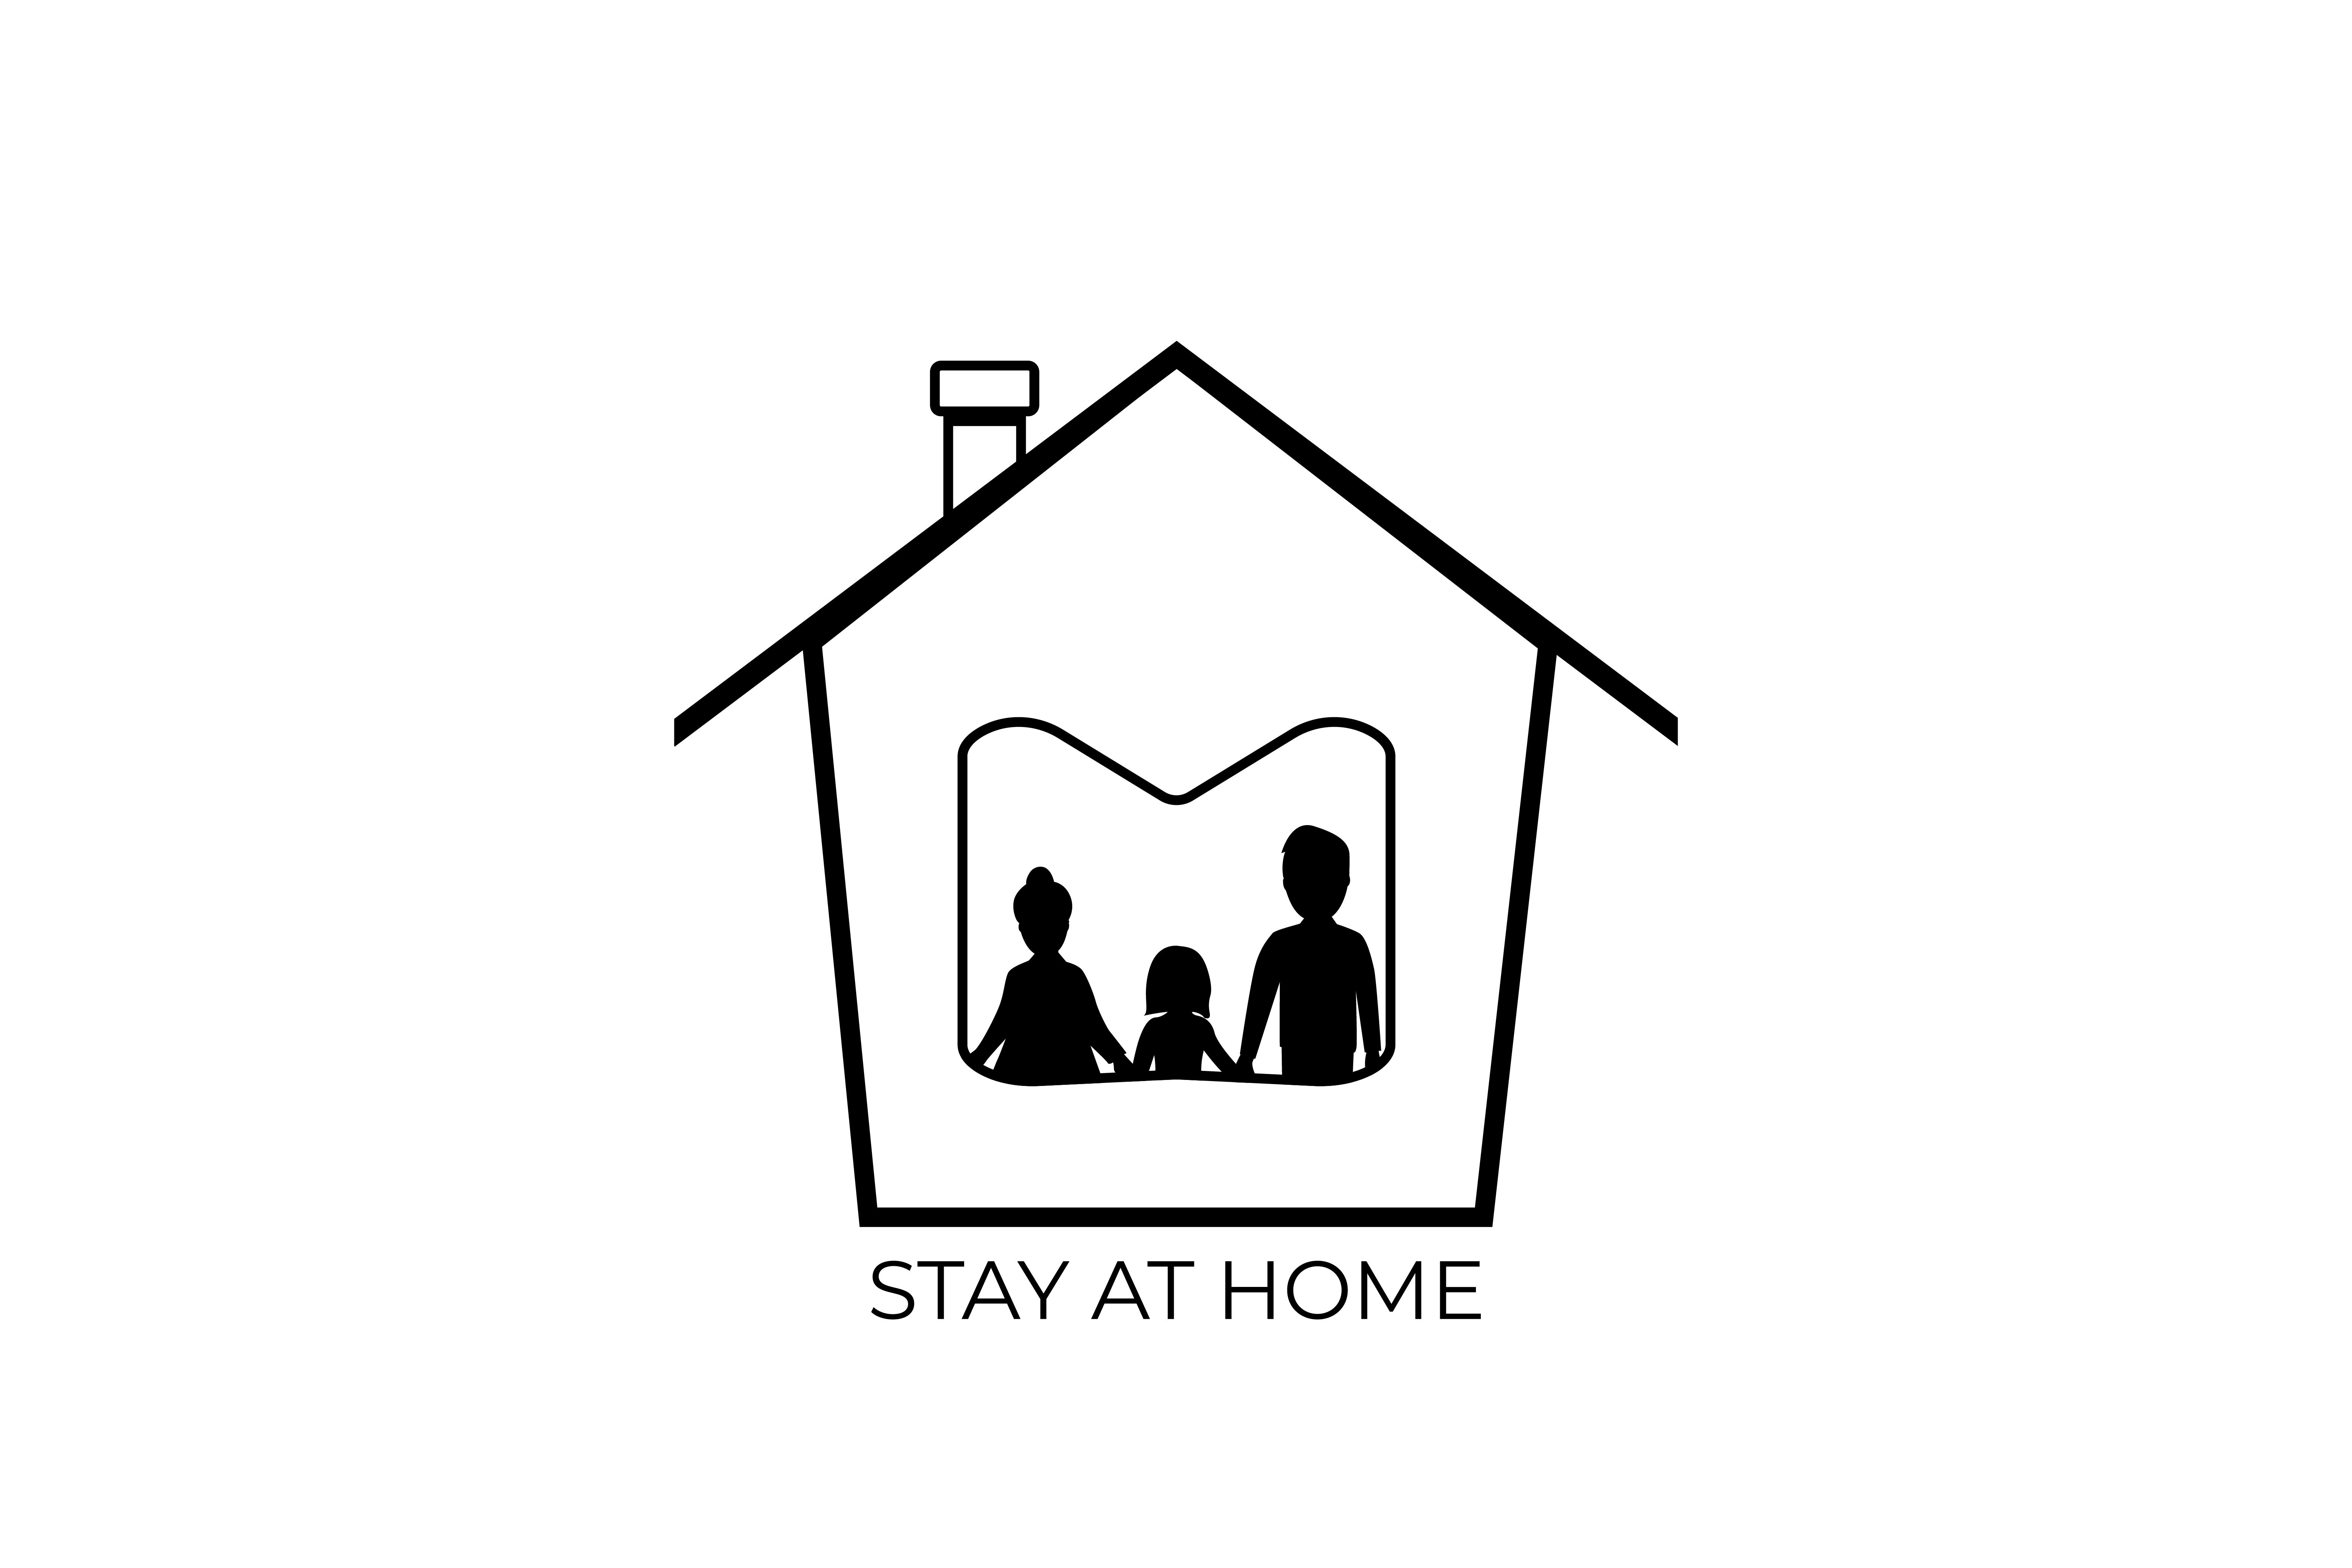 Download Free Stay At Home Corona Virus Prevention Grafico Por Ngabeivector for Cricut Explore, Silhouette and other cutting machines.